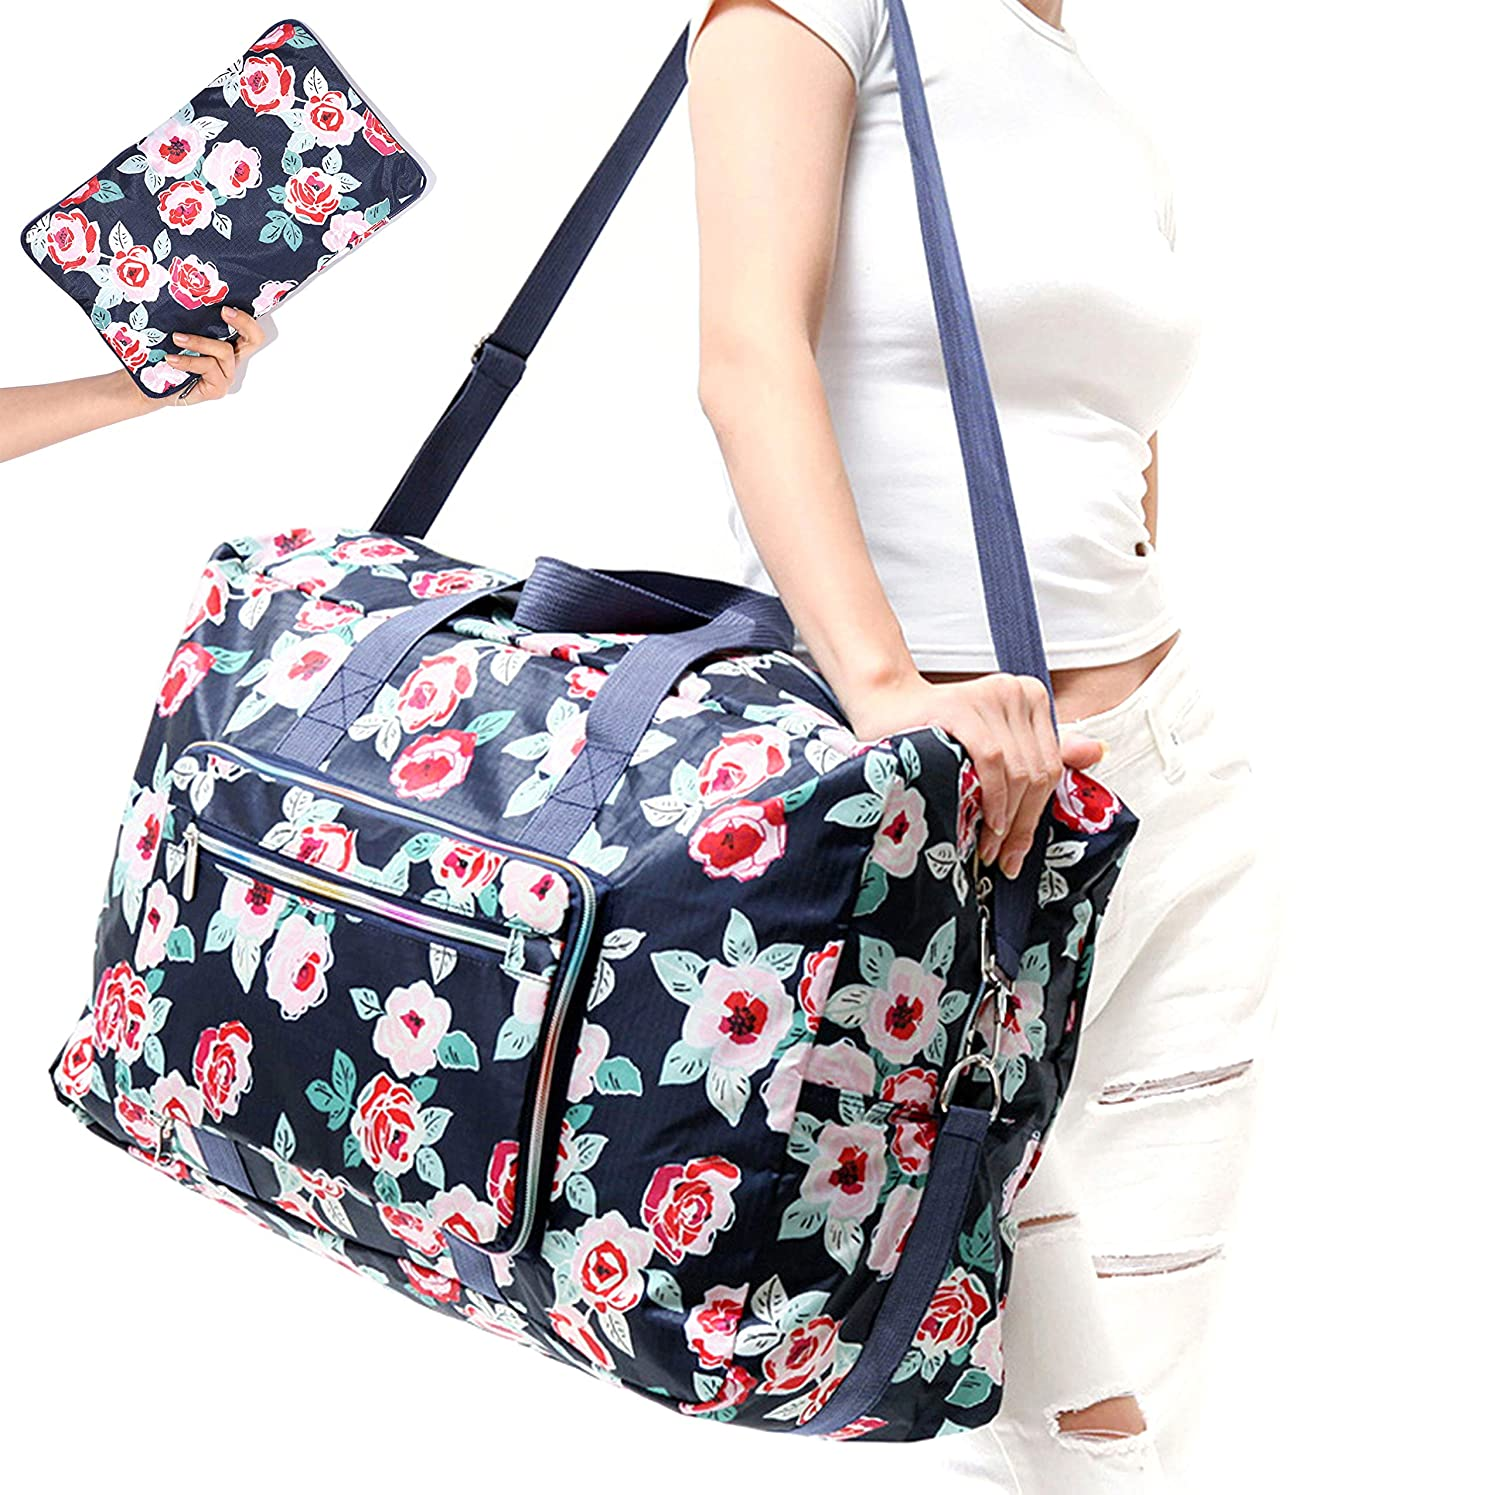 Travel Duffel Bag Foldable Floral Large Travel Bag Weekend Bag Checked Bag Luggage Tote 18 Style 21.6IN x 9.8IN x 13.7IN